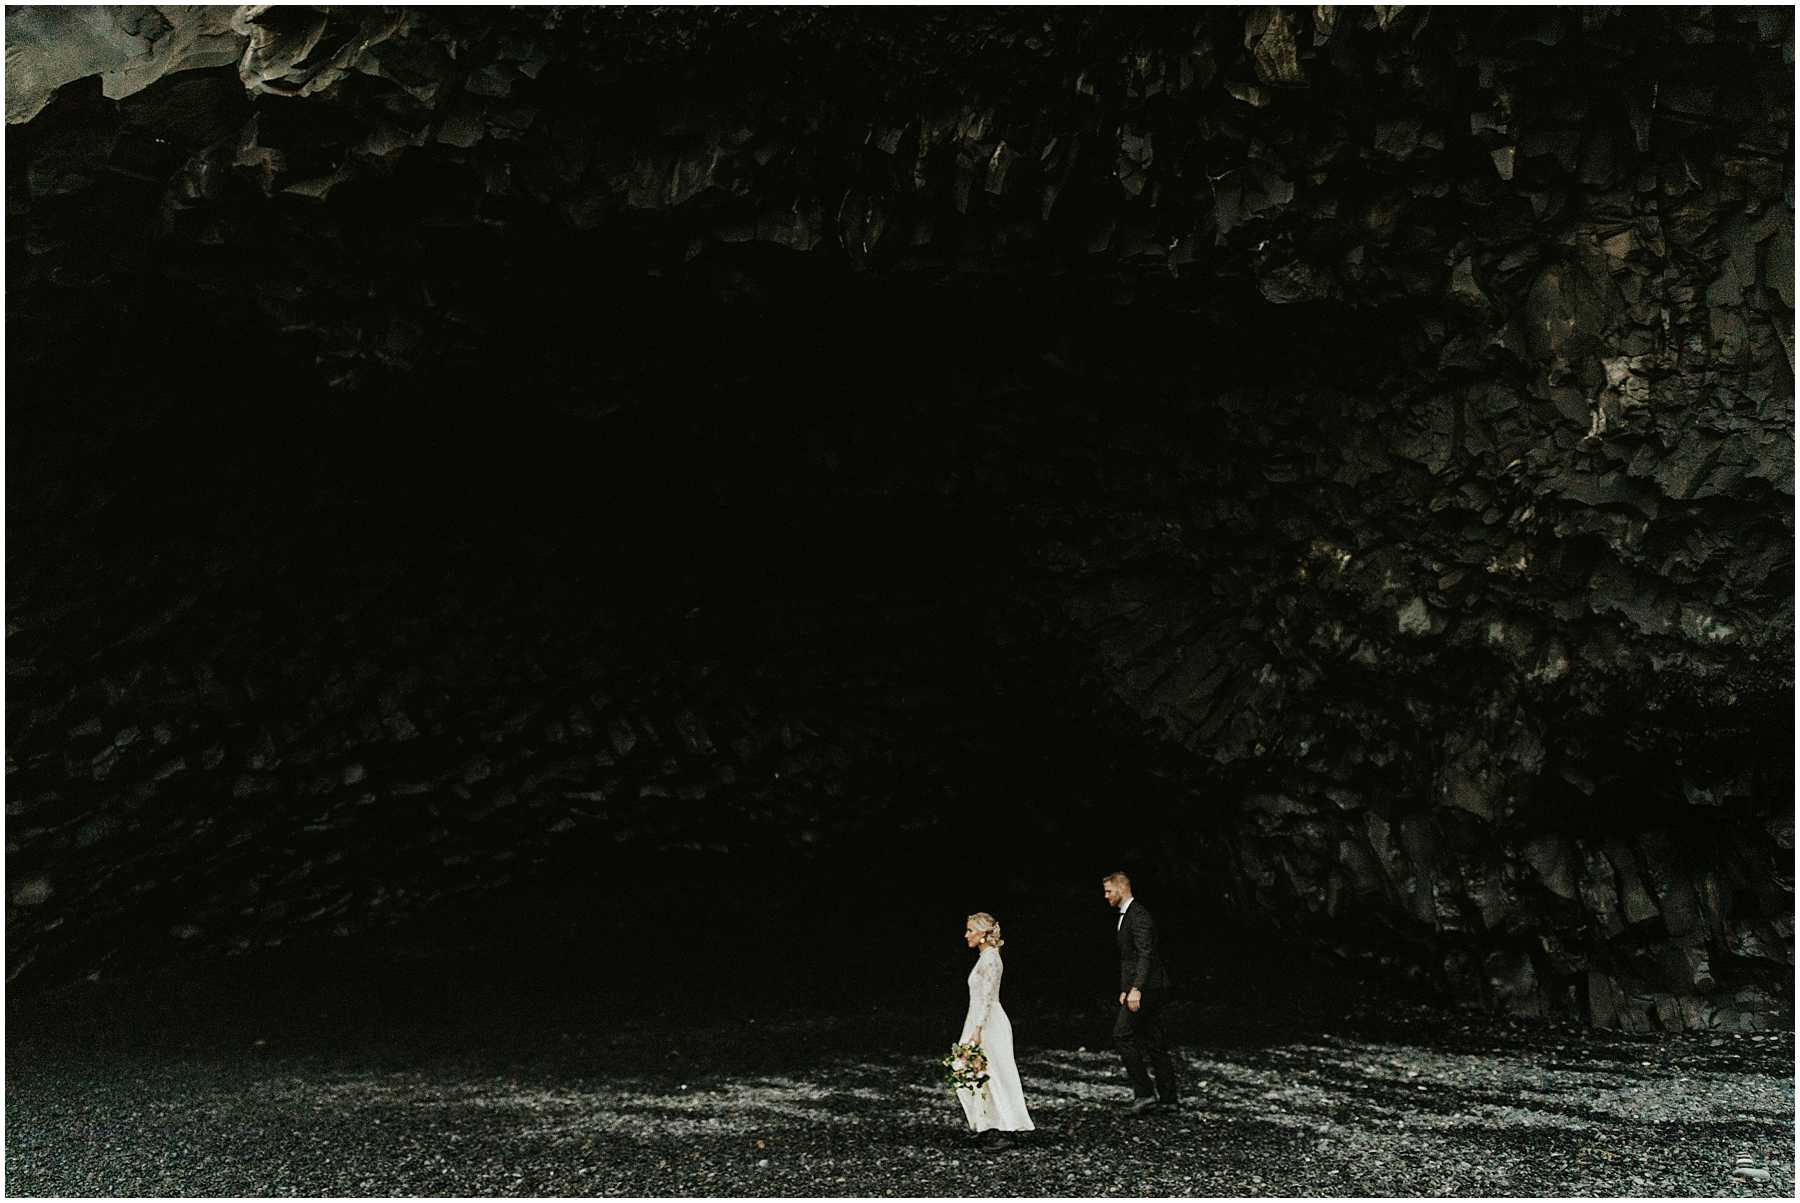 A bride and groom at Black Sands Beach in Vik, Iceland